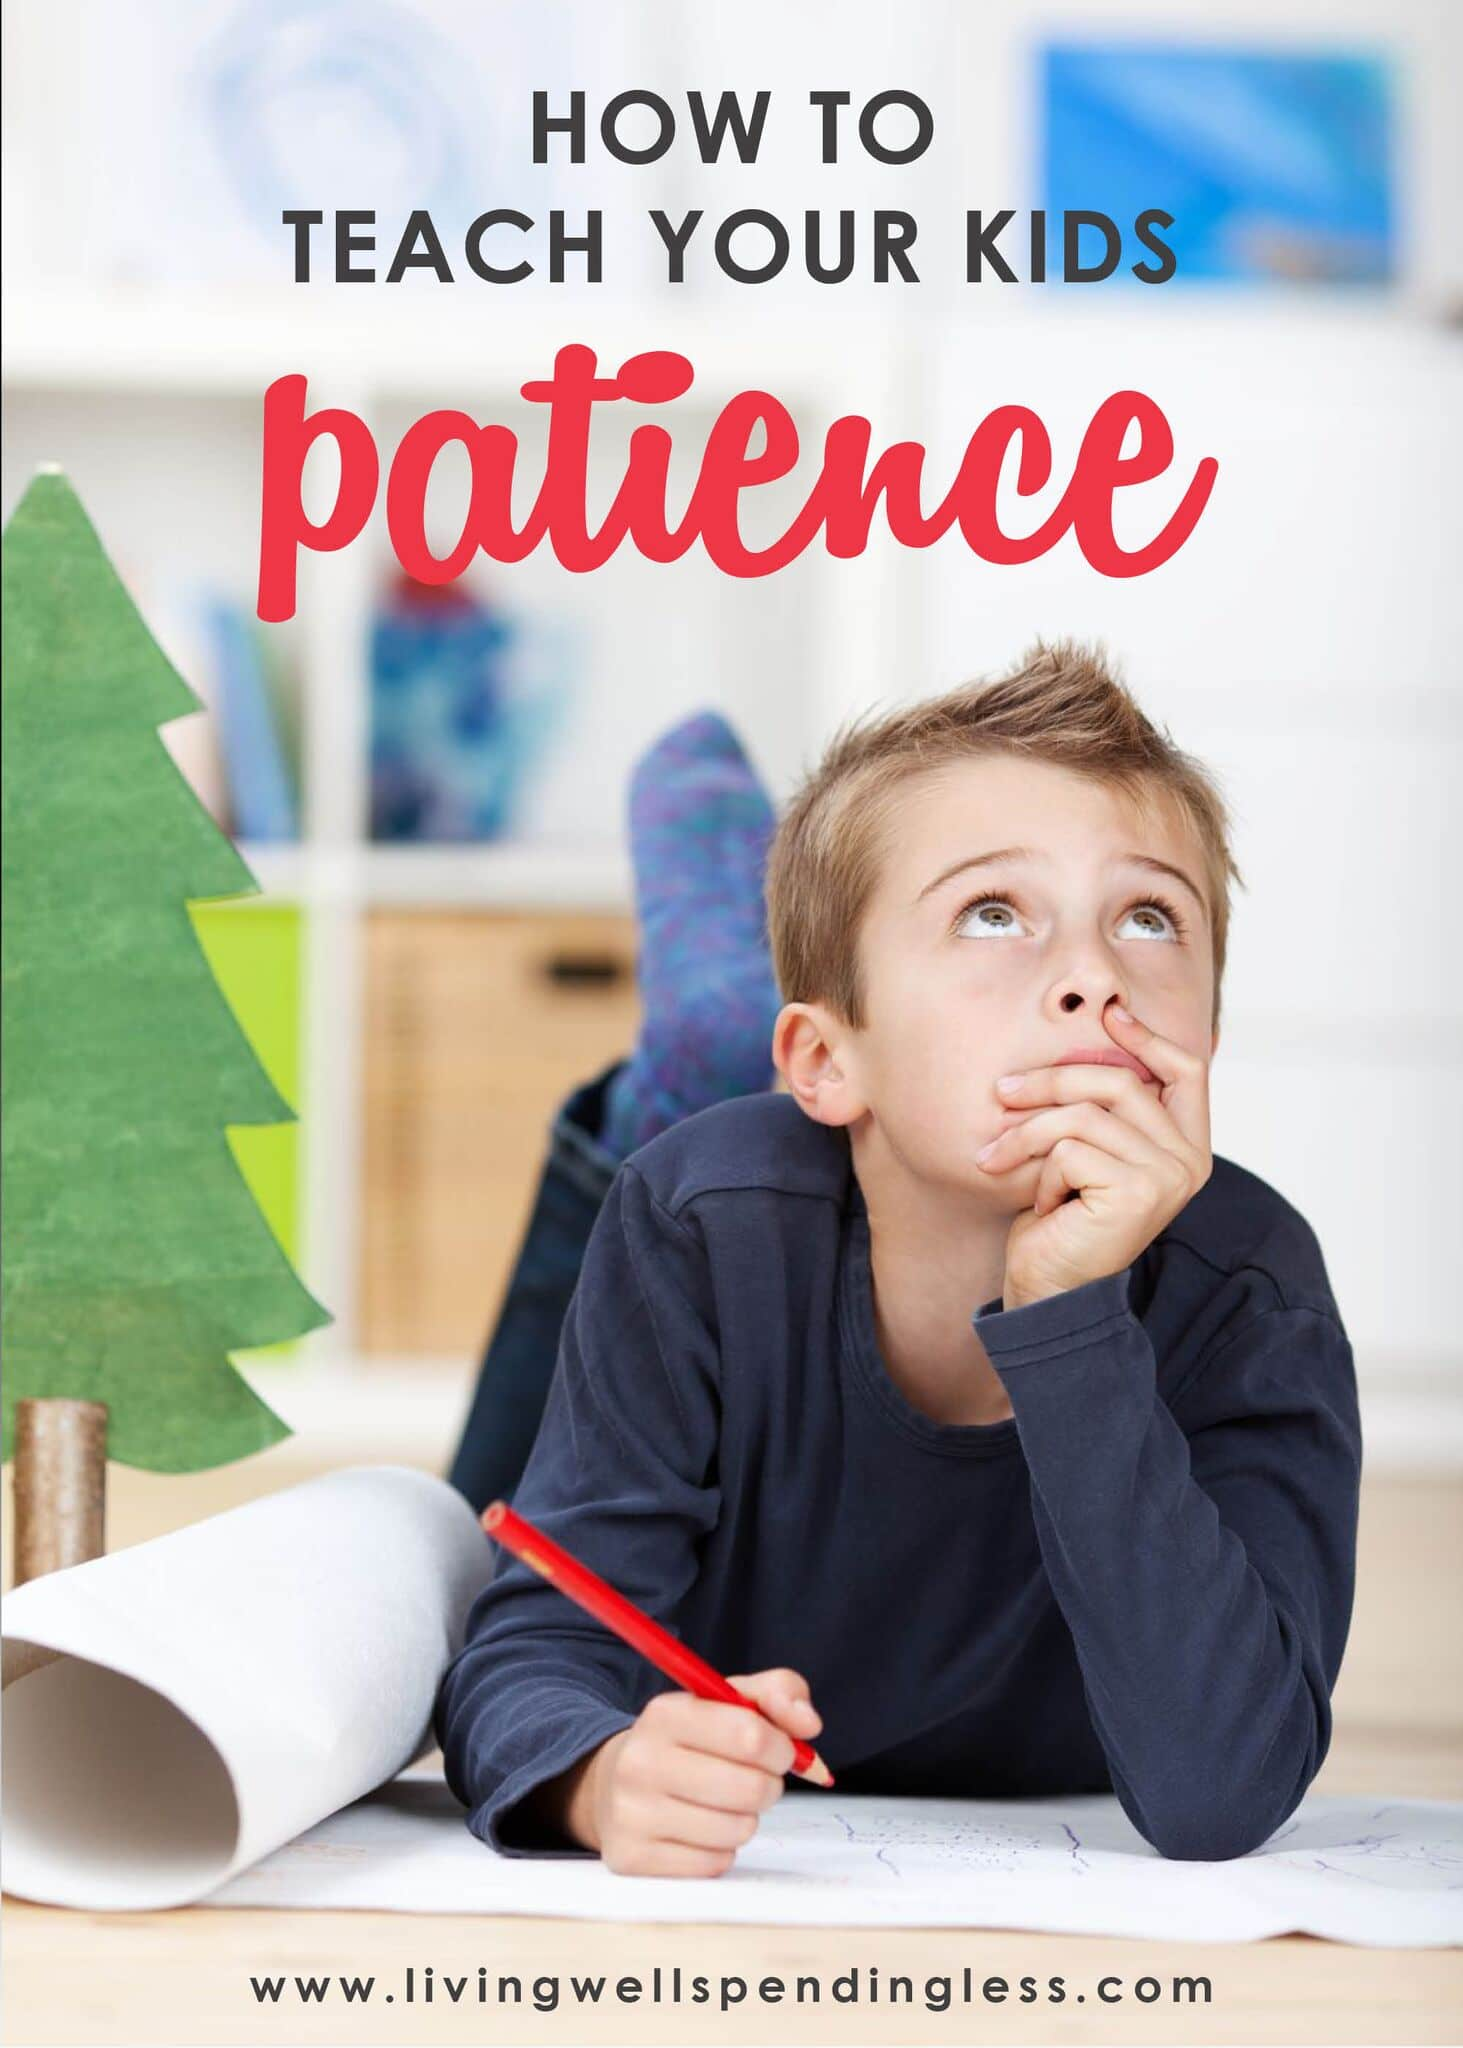 How to Teach Your Kids Patience